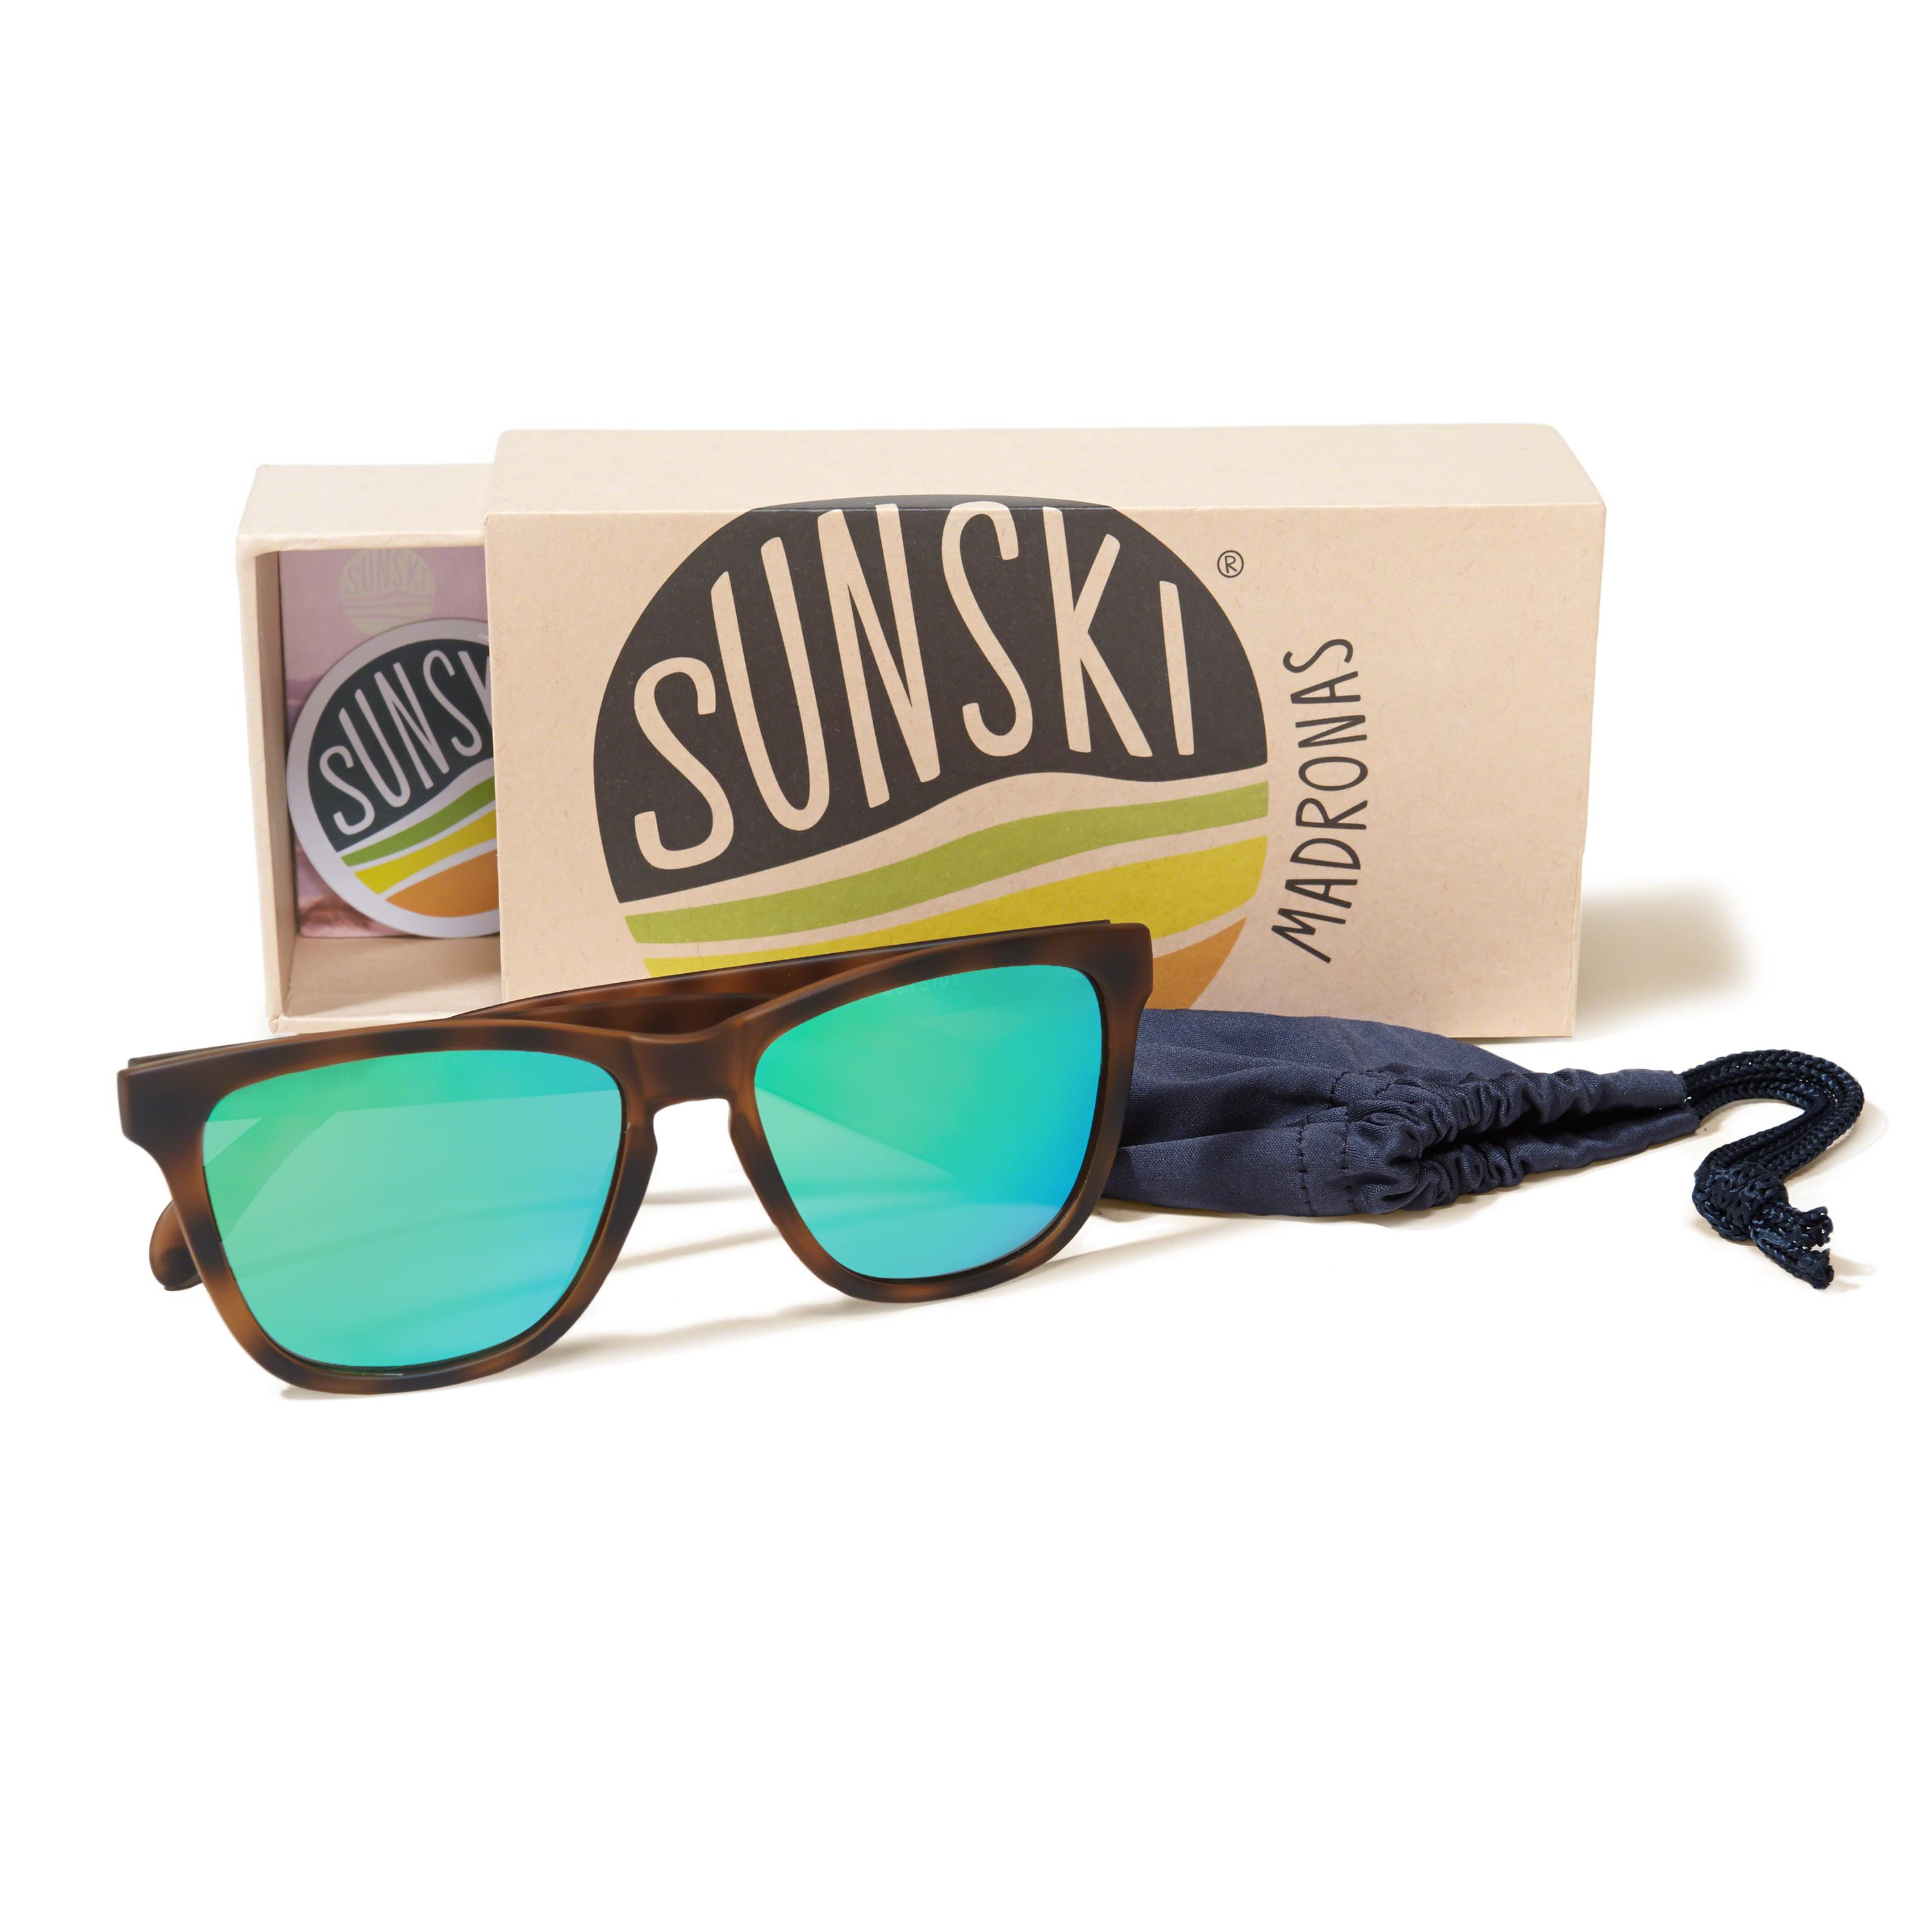 5d9c5437bf Lyst - Hollister Sunski Madrona Sunglasses for Men